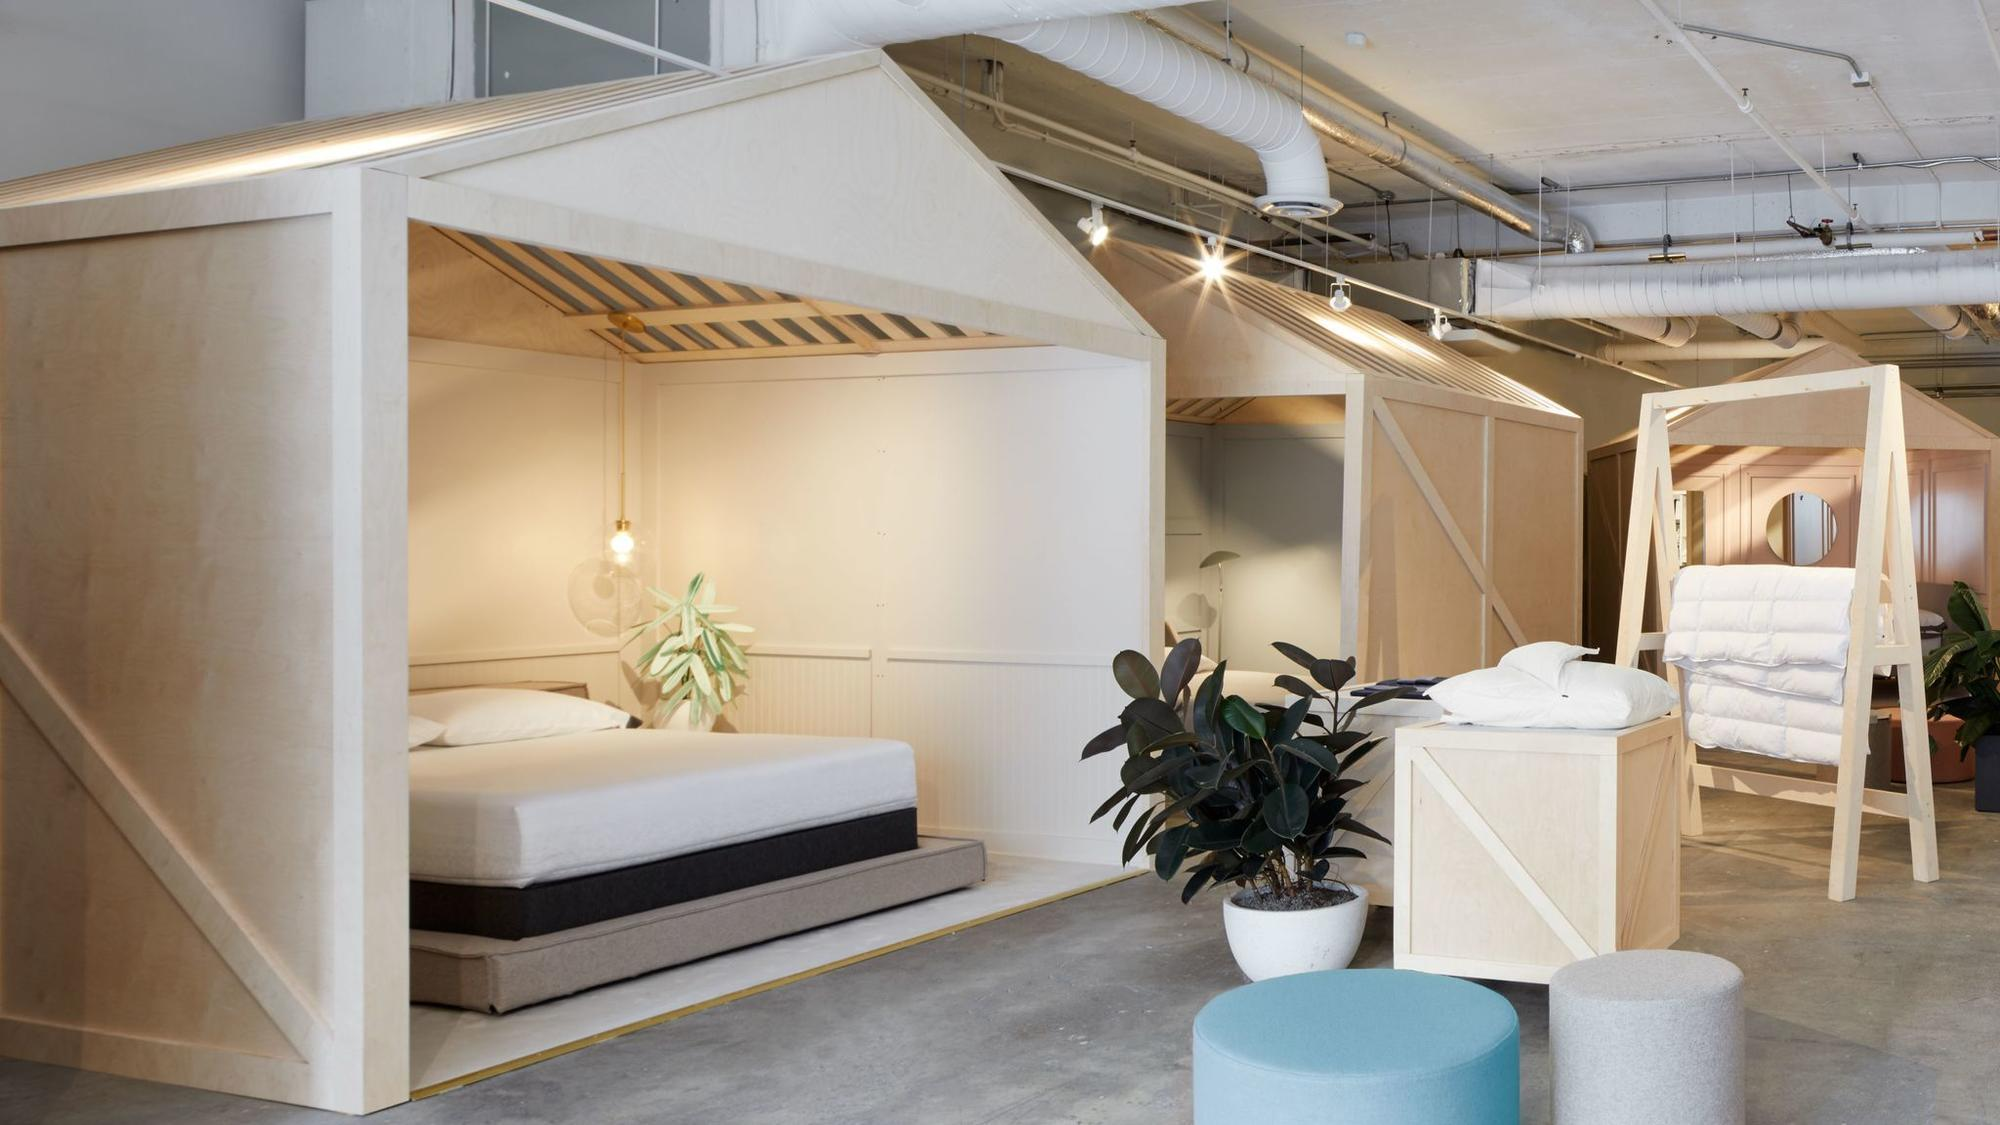 Casper Mattresses Go Offline With Pop Up Location In